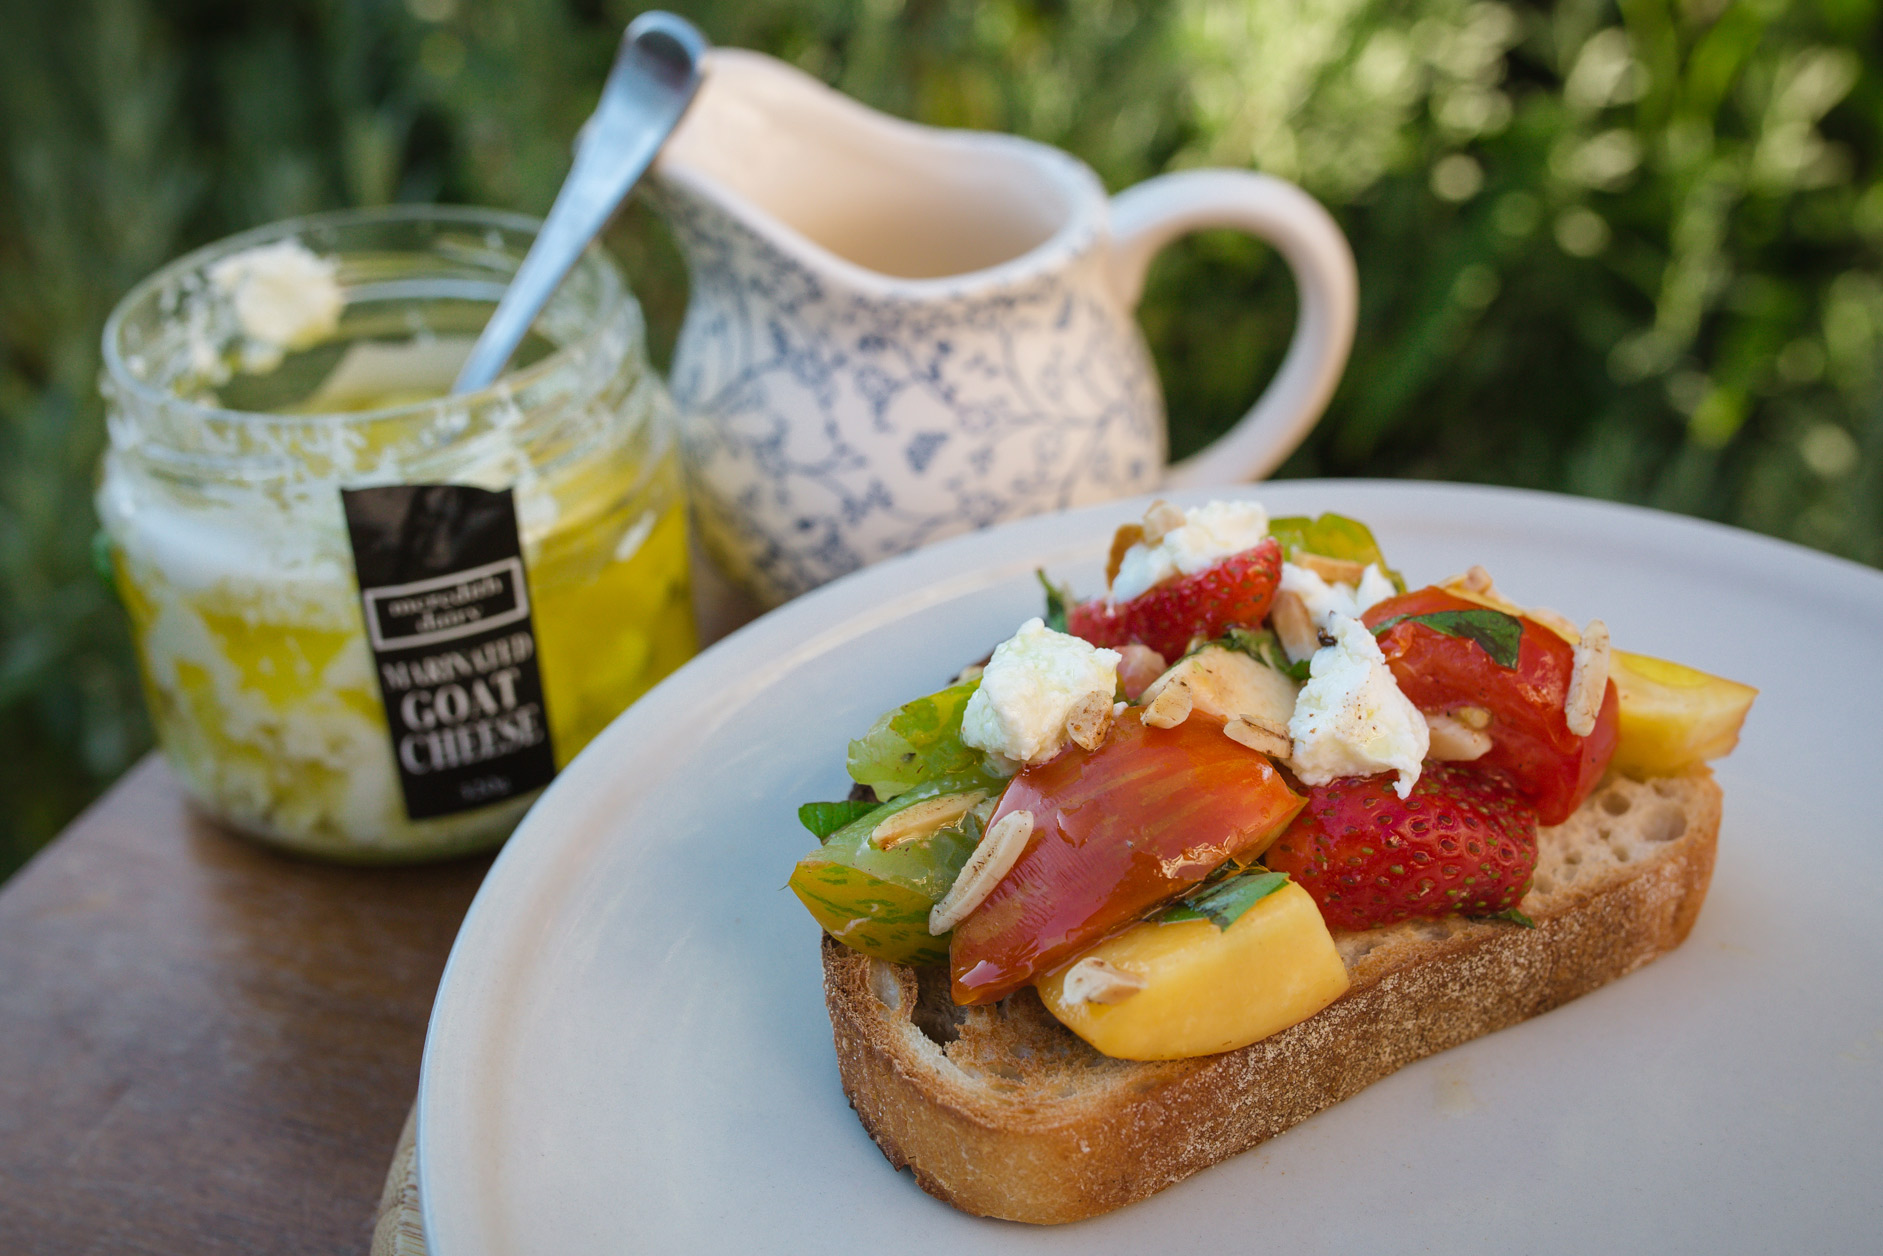 Heirloom tomato, nectarine and strawberry bruschetta with basil and feta